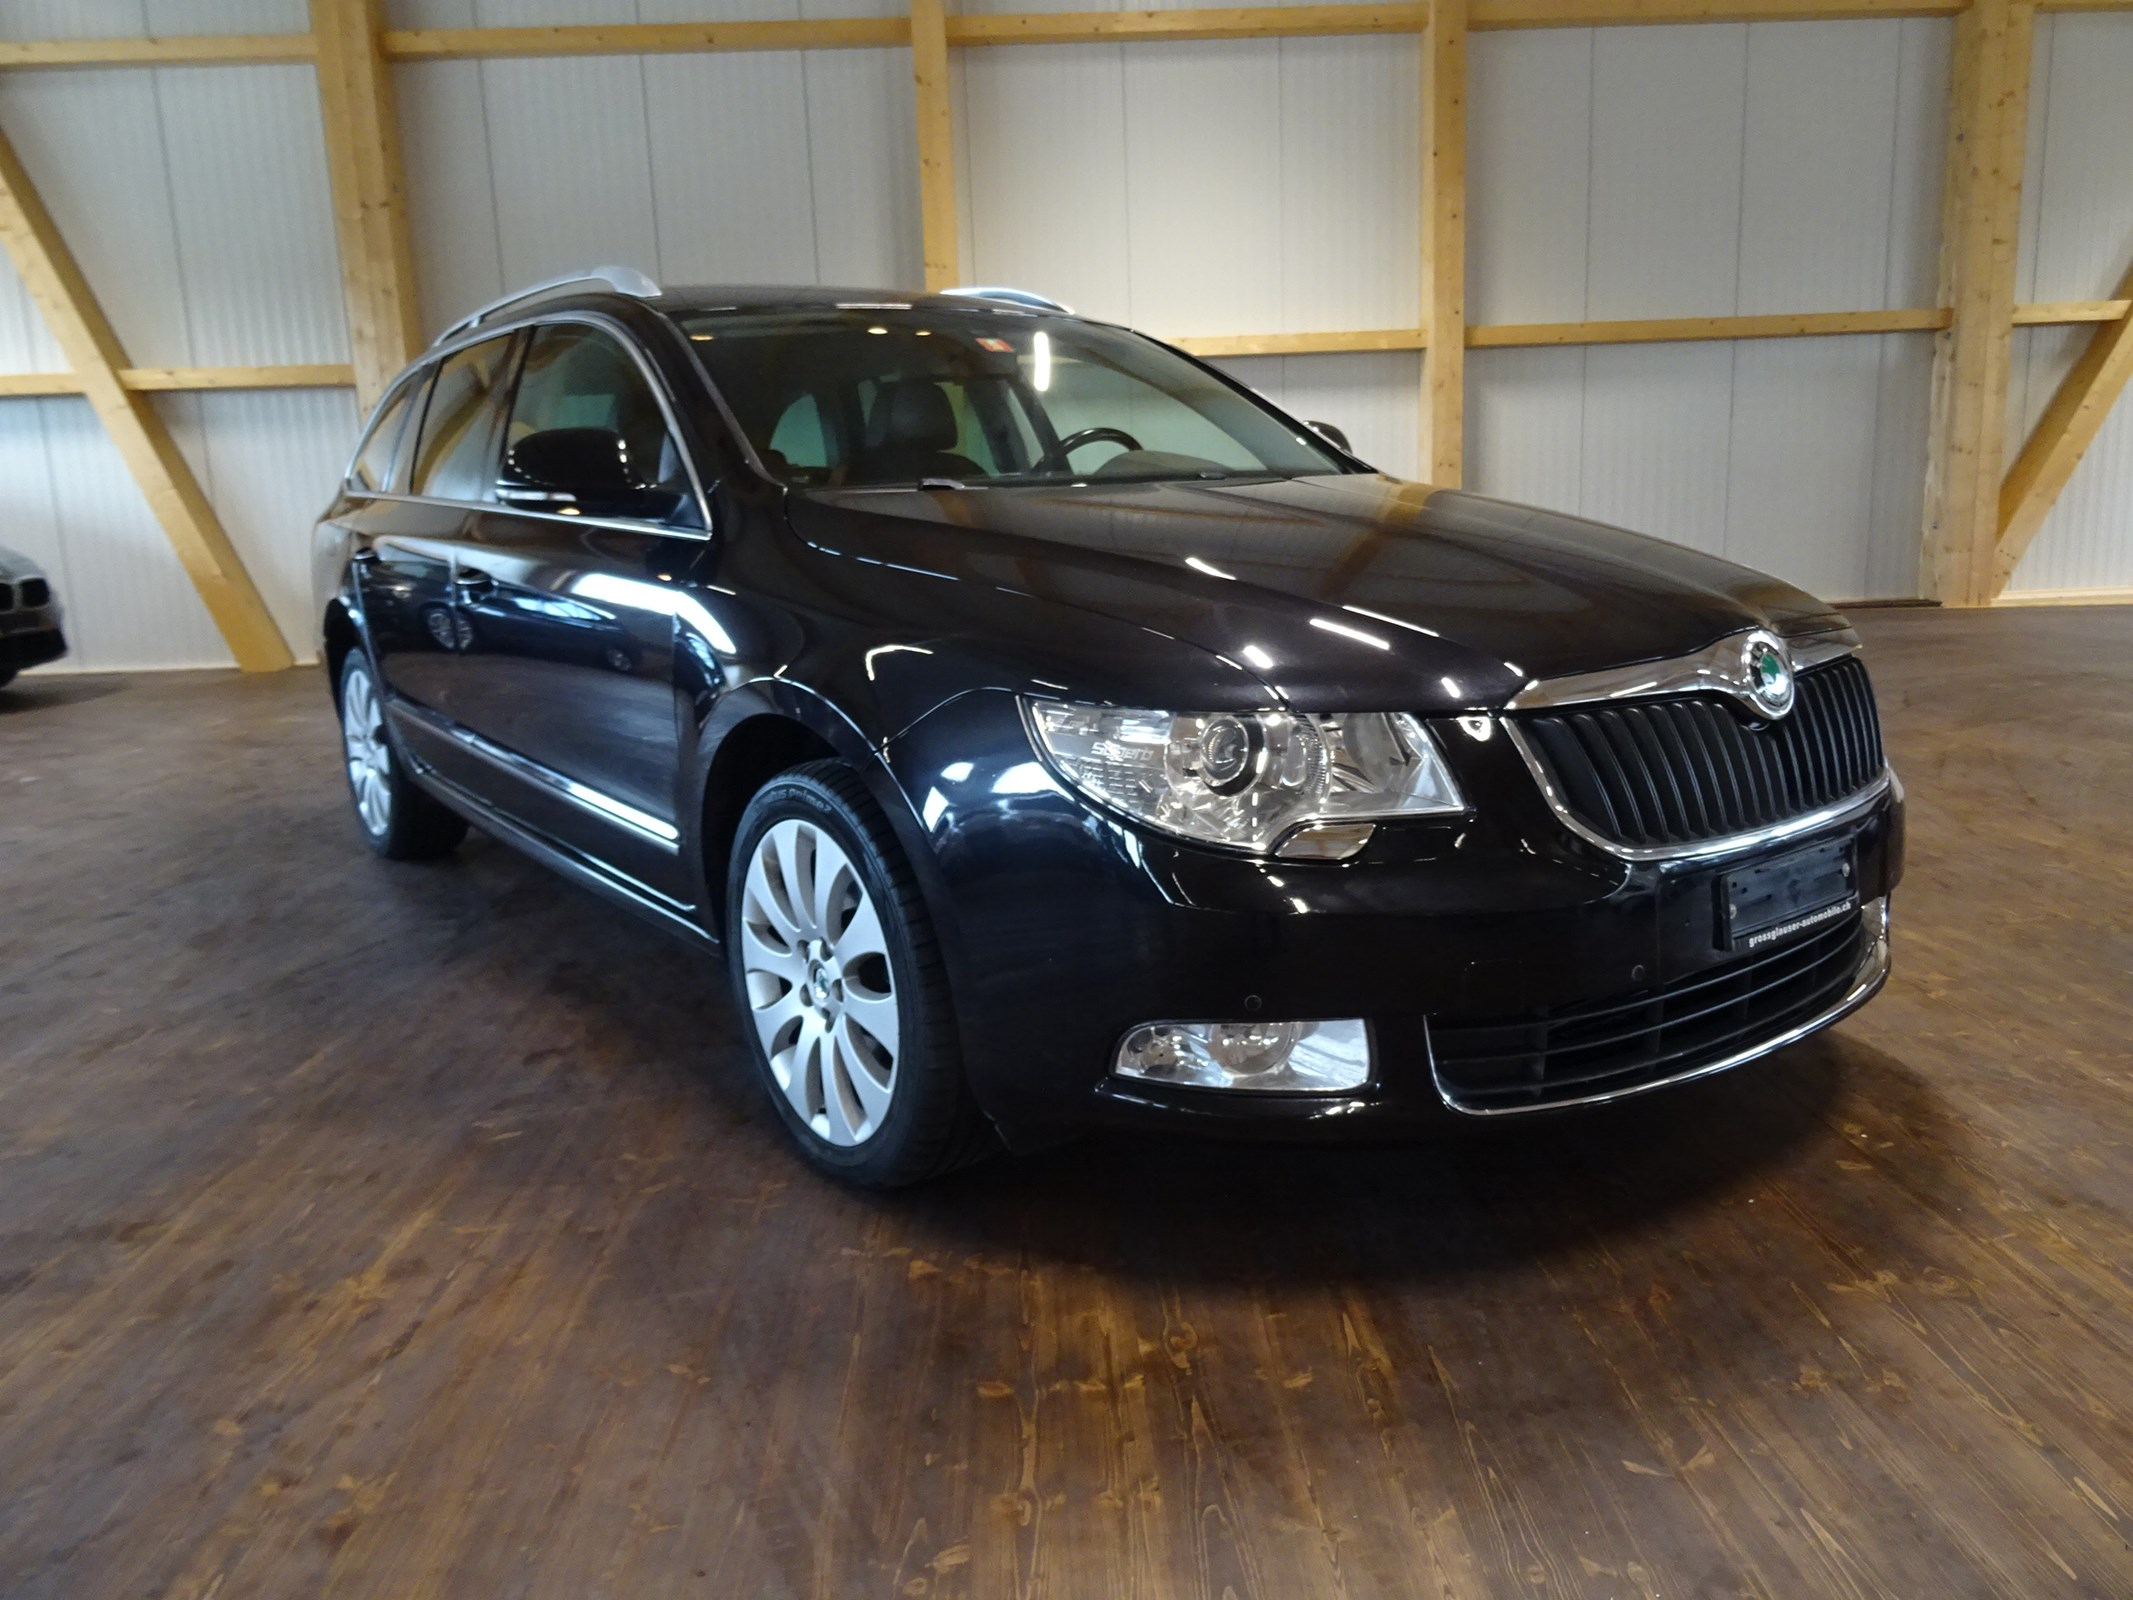 estate Skoda Superb Combi 2.0 TDi Elegance